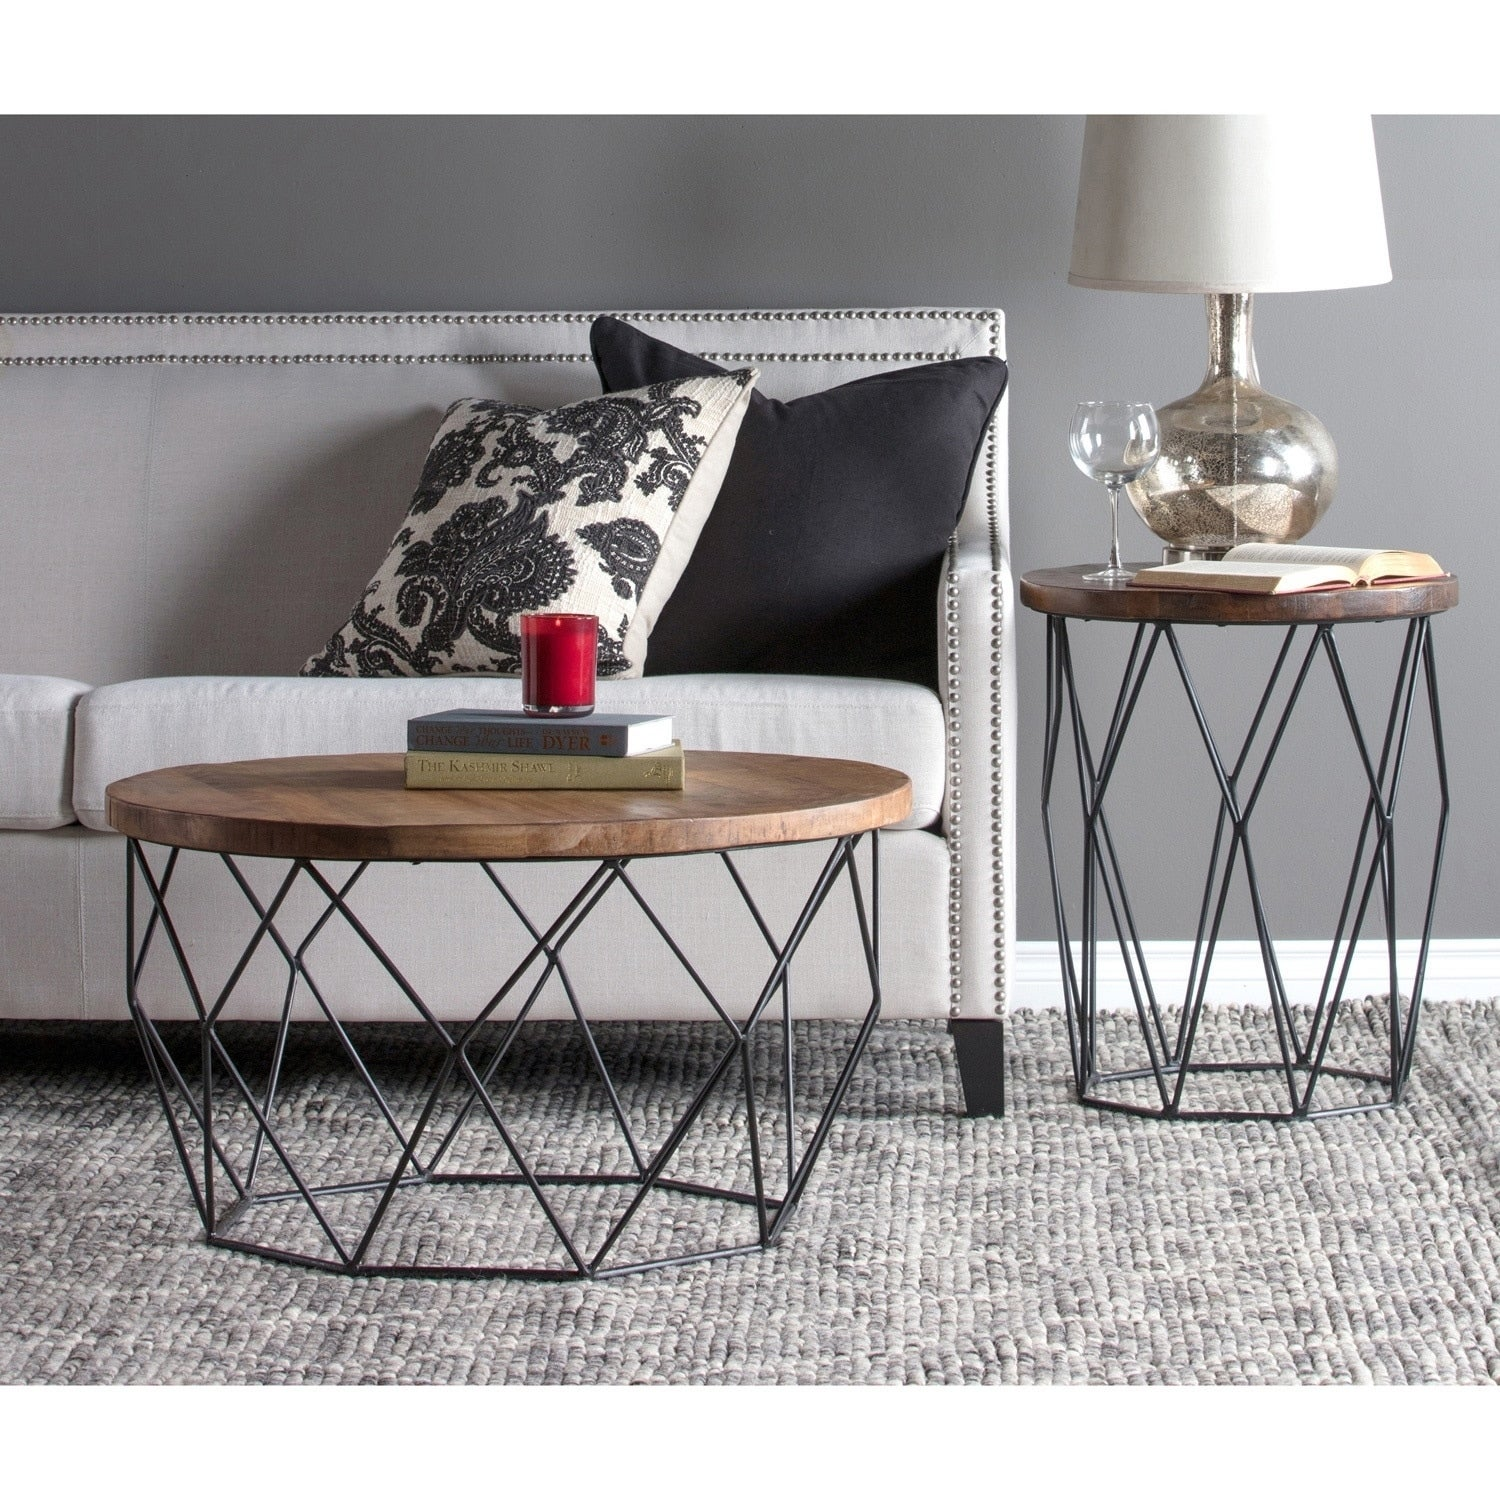 Shop Chester Wood And Iron Geometric Round Coffee Table By Kosas